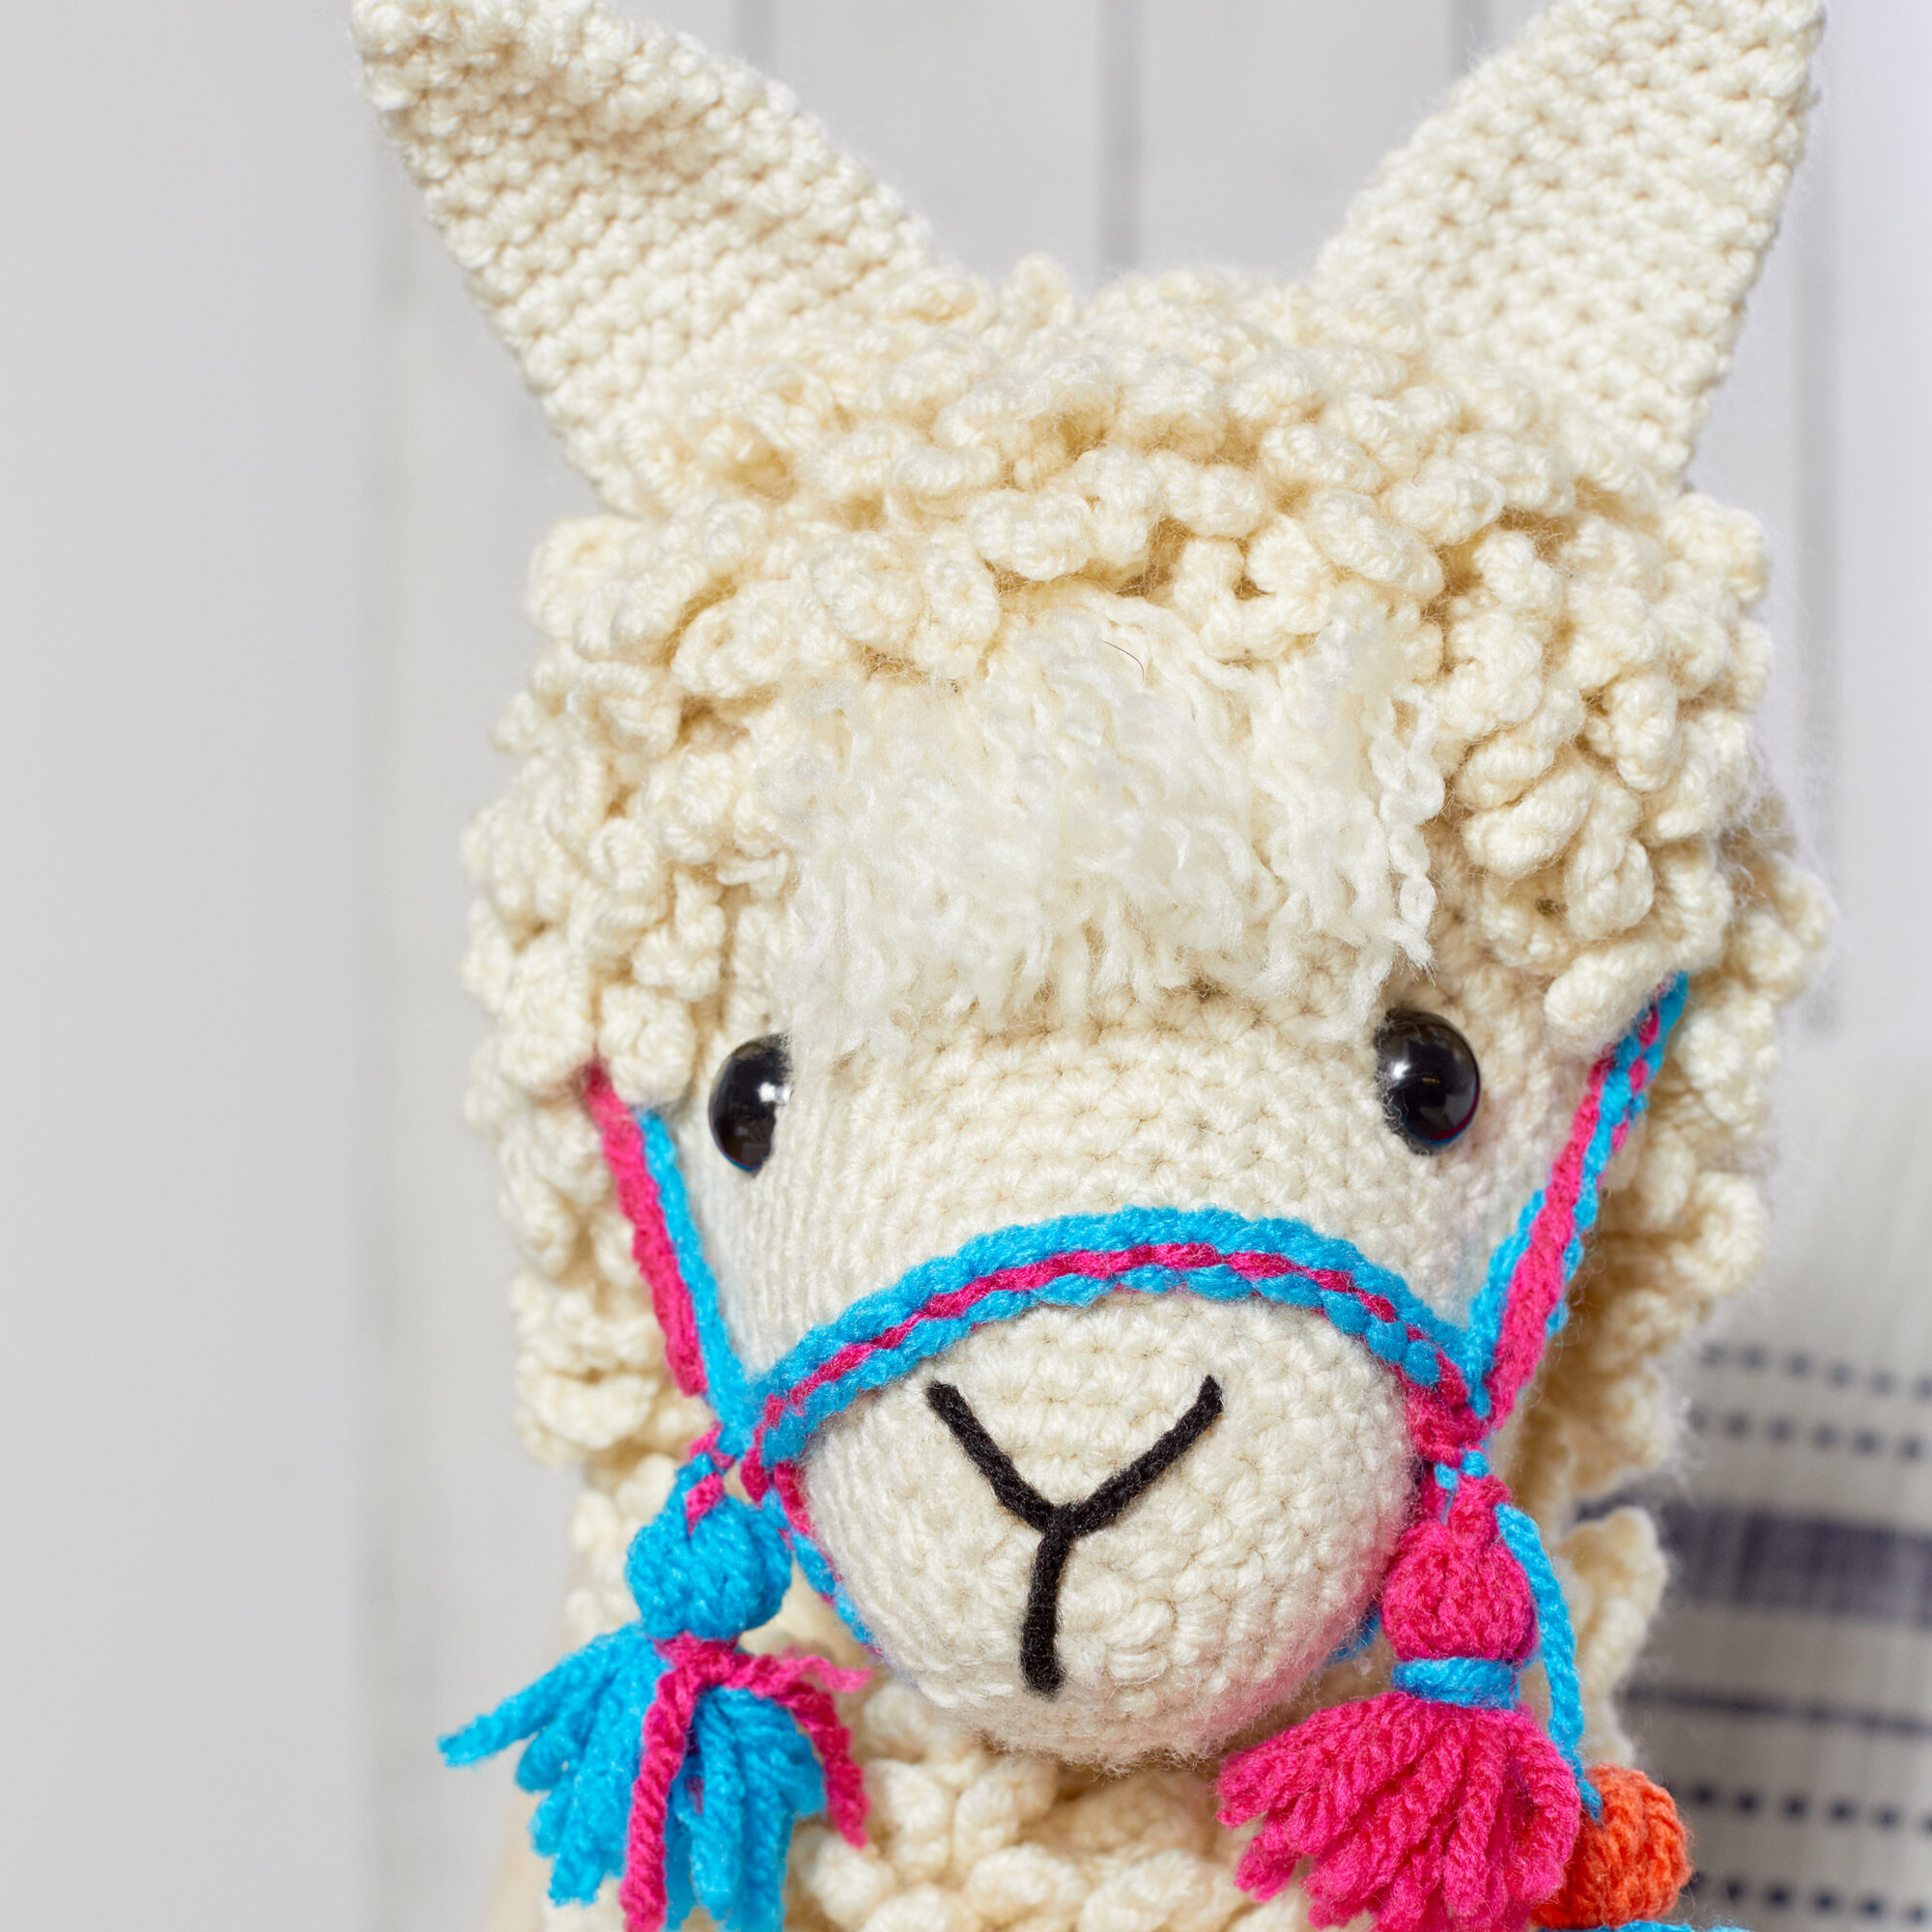 Crochet Alpaca Amigurumi Free Patterns - DIY Magazine | 2000x2000